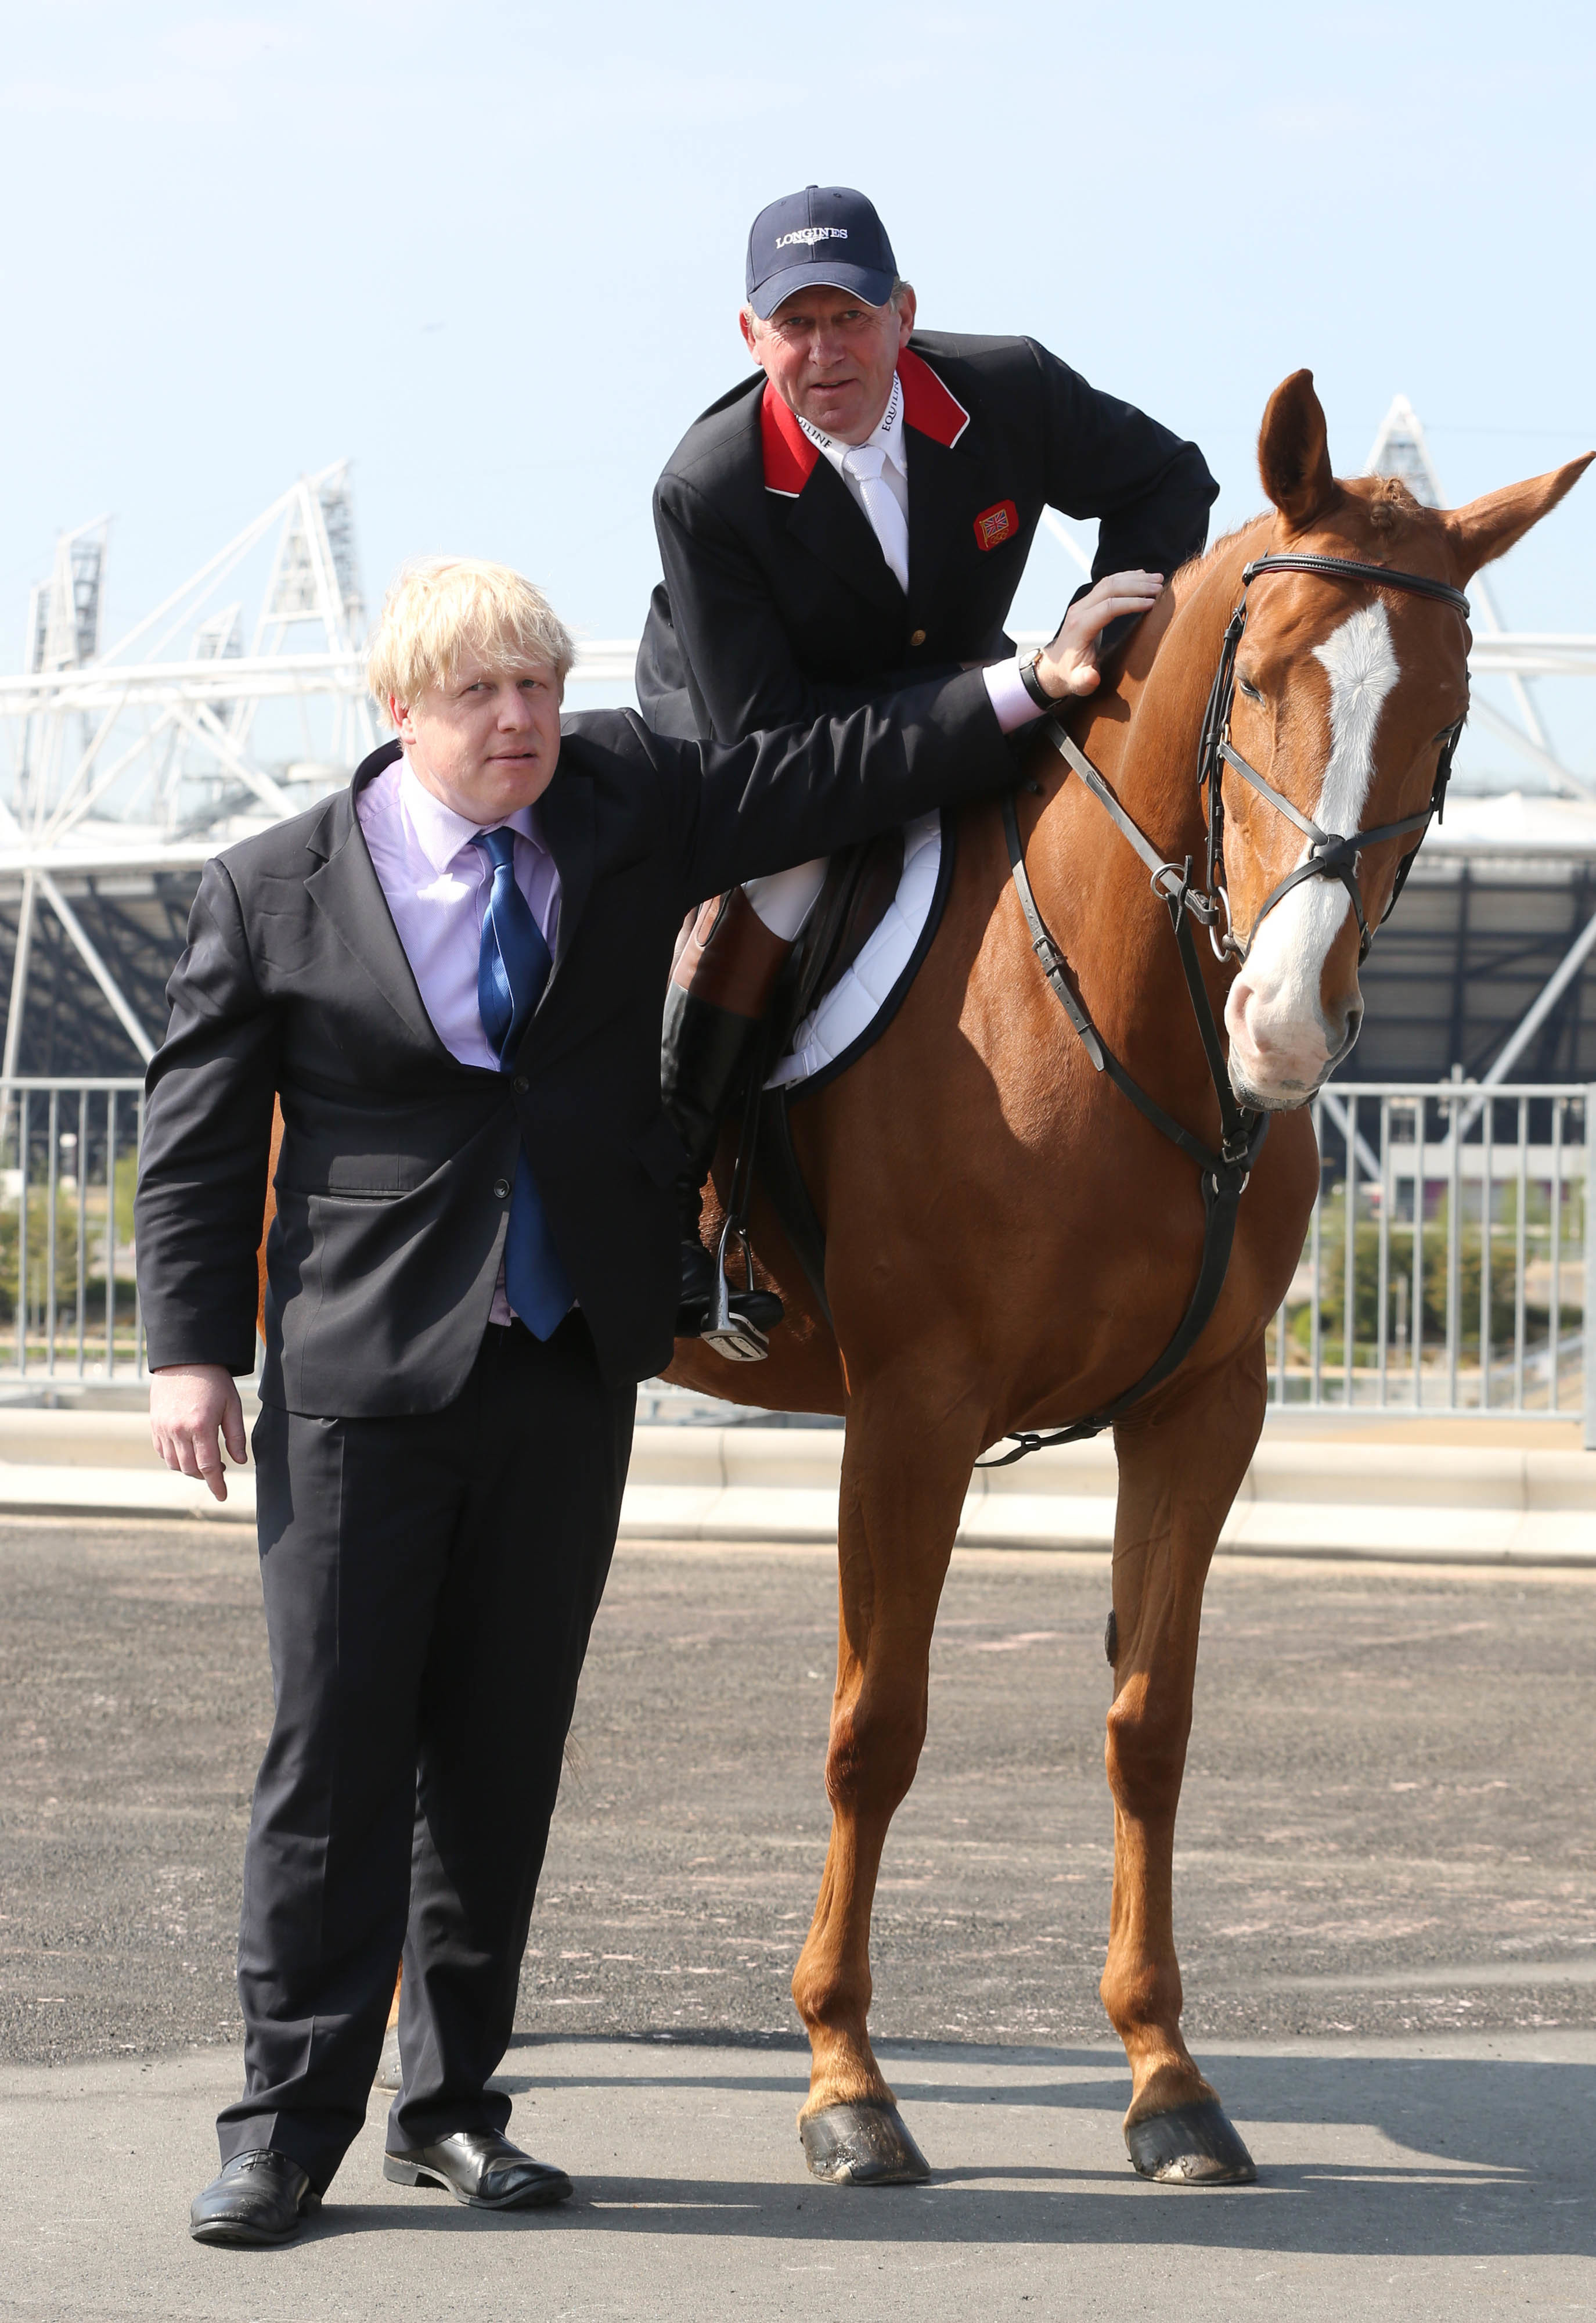 EDITORIAL USE ONLY Olympic Gold medalist Nick Skelton and Mayor of London Boris Johnson at the launch of the Longines Global Champions Tour, an international show jumping event that will take place in The International Quarter adjacent to Queen Elizabeth Olympic Park in east London, from 6th Ð 9th June 2013.